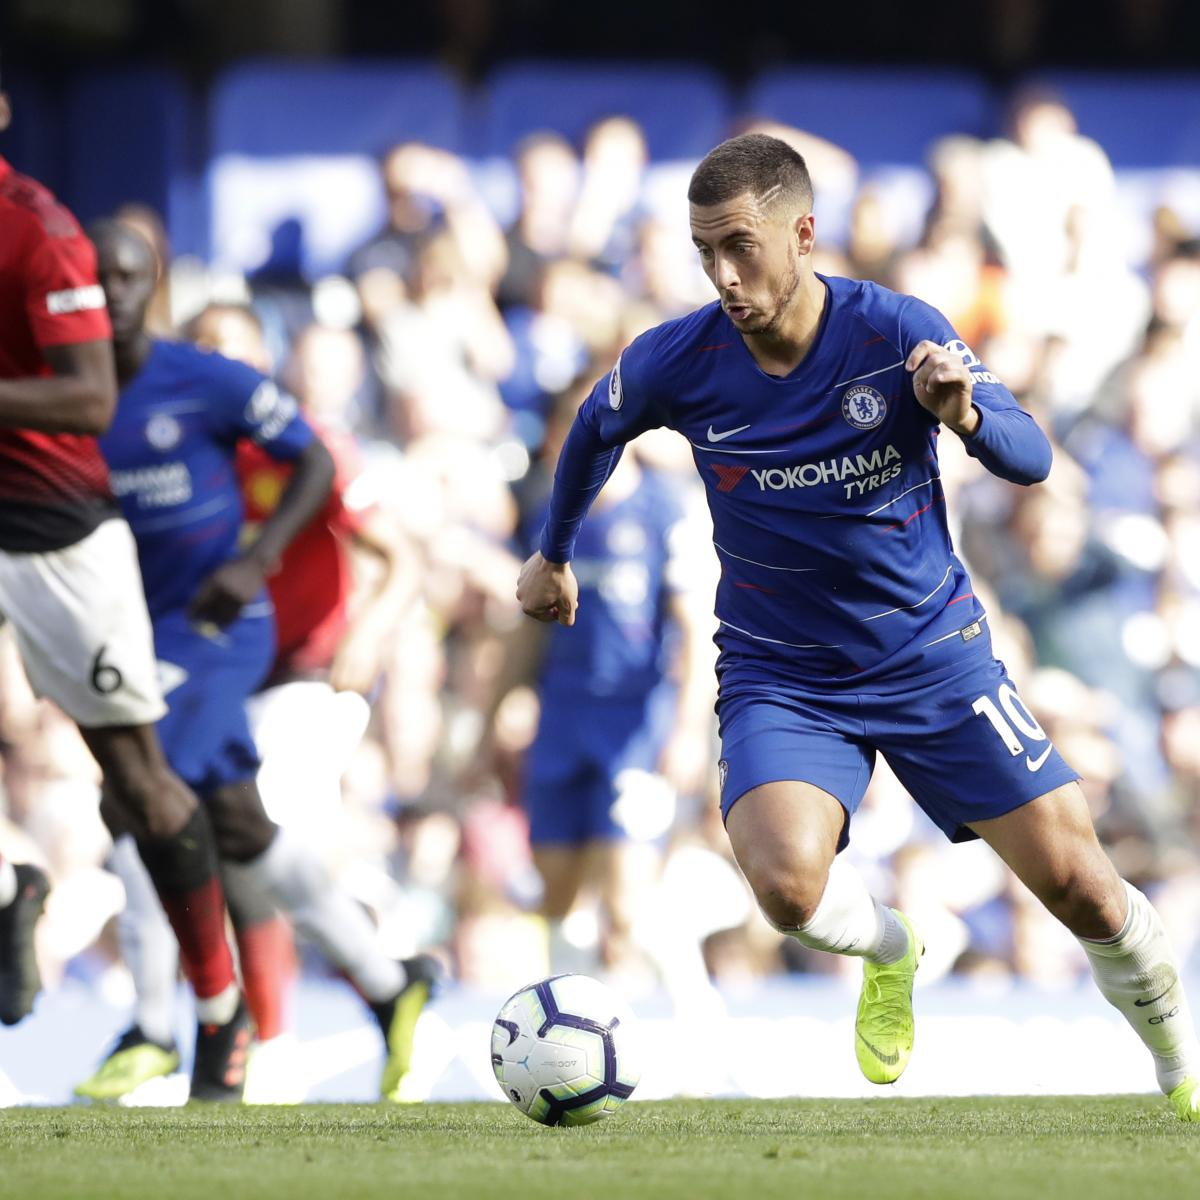 Premier League 17 Matchday Round Season 2018 2019: Chelsea Vs. Manchester United: FA Cup 2019 Odds, Live